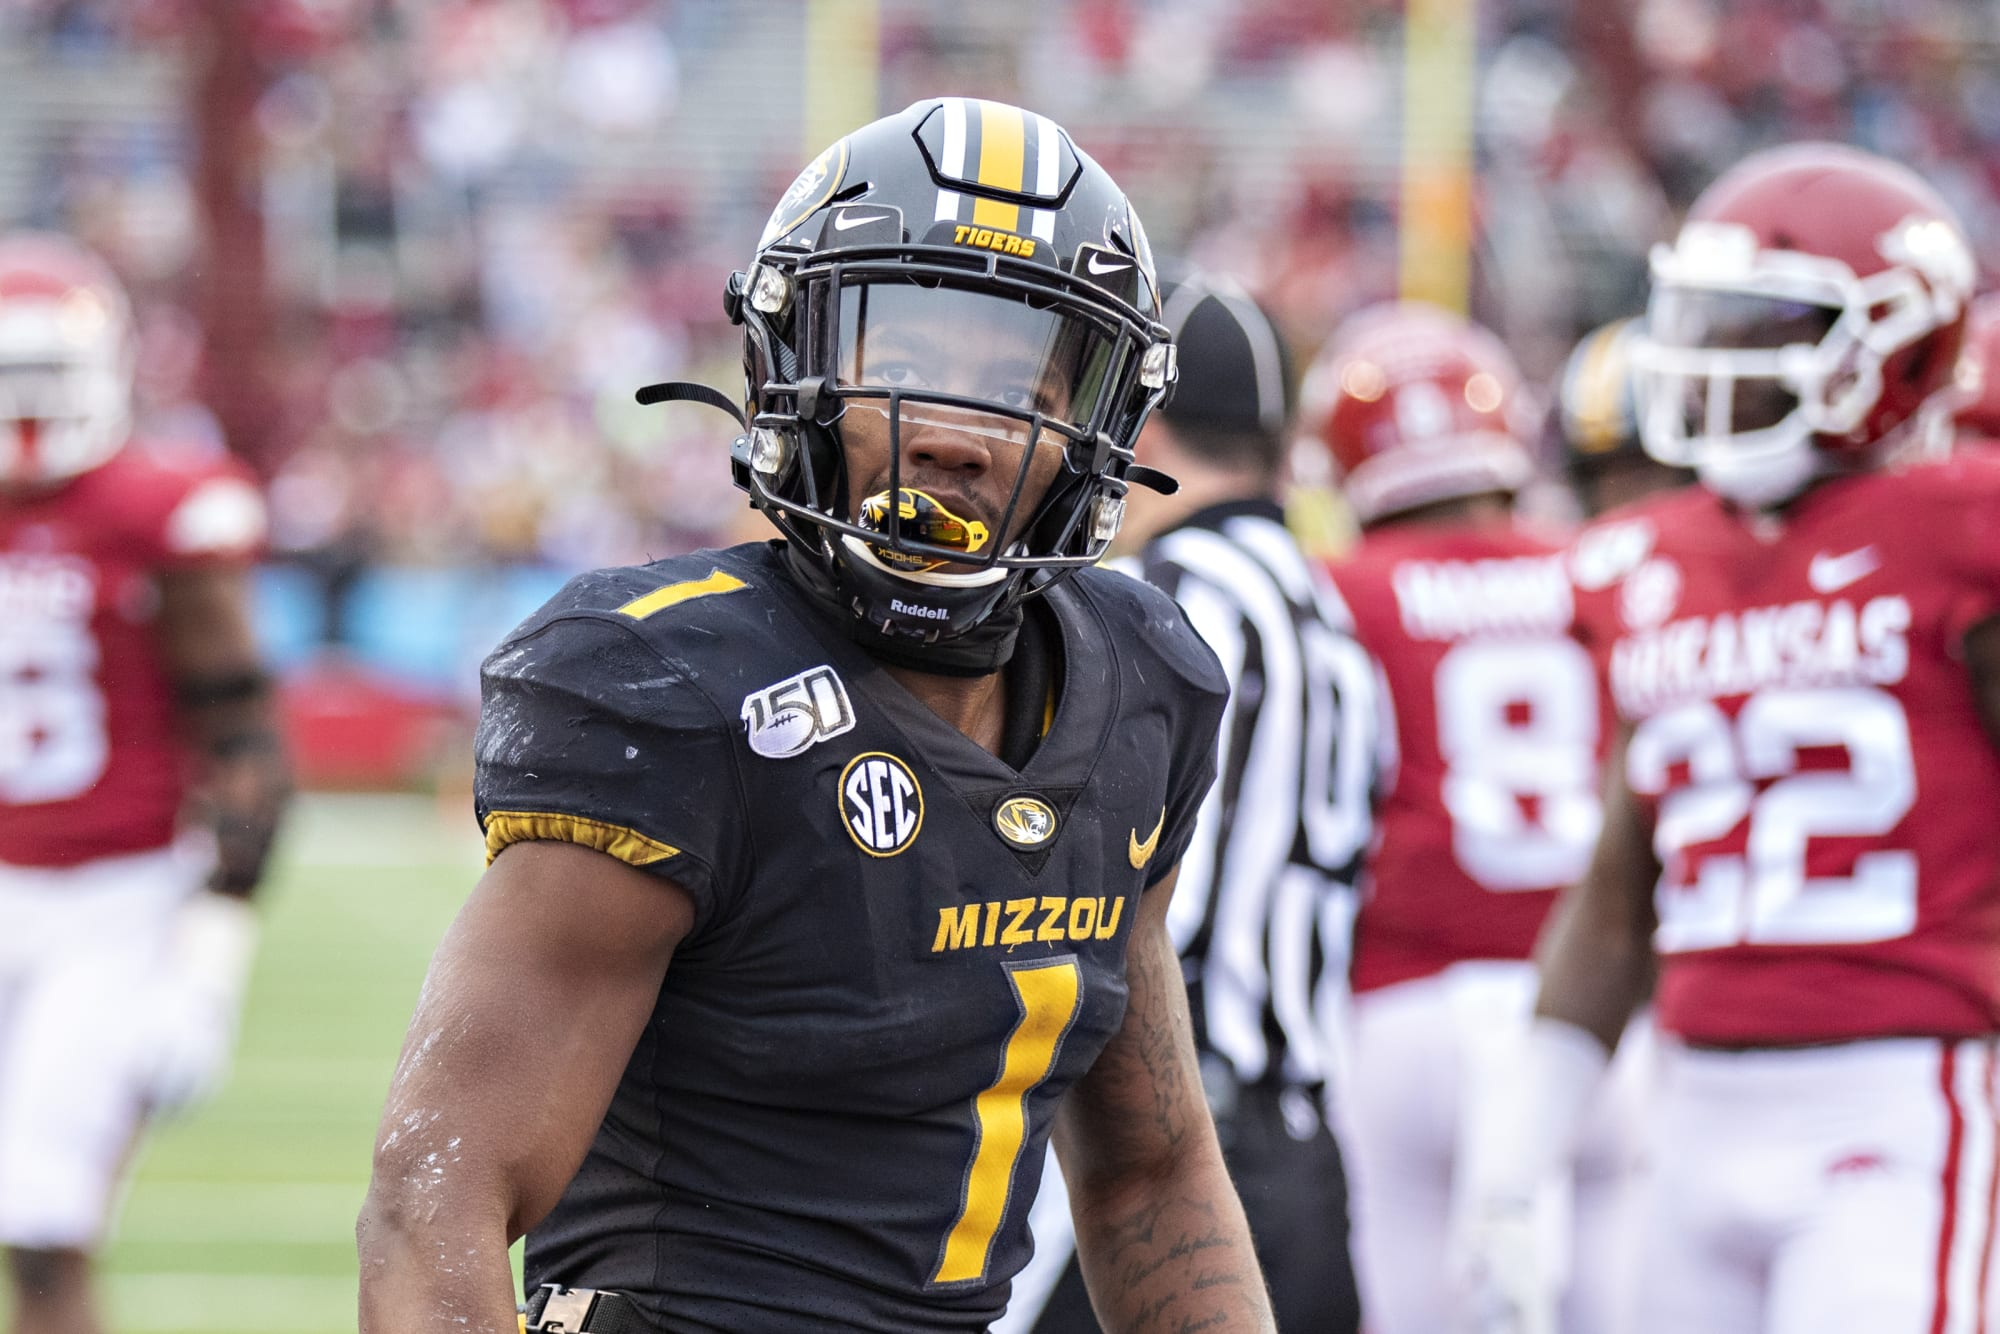 Four Mizzou players who could be selected in 2022 NFL Draft